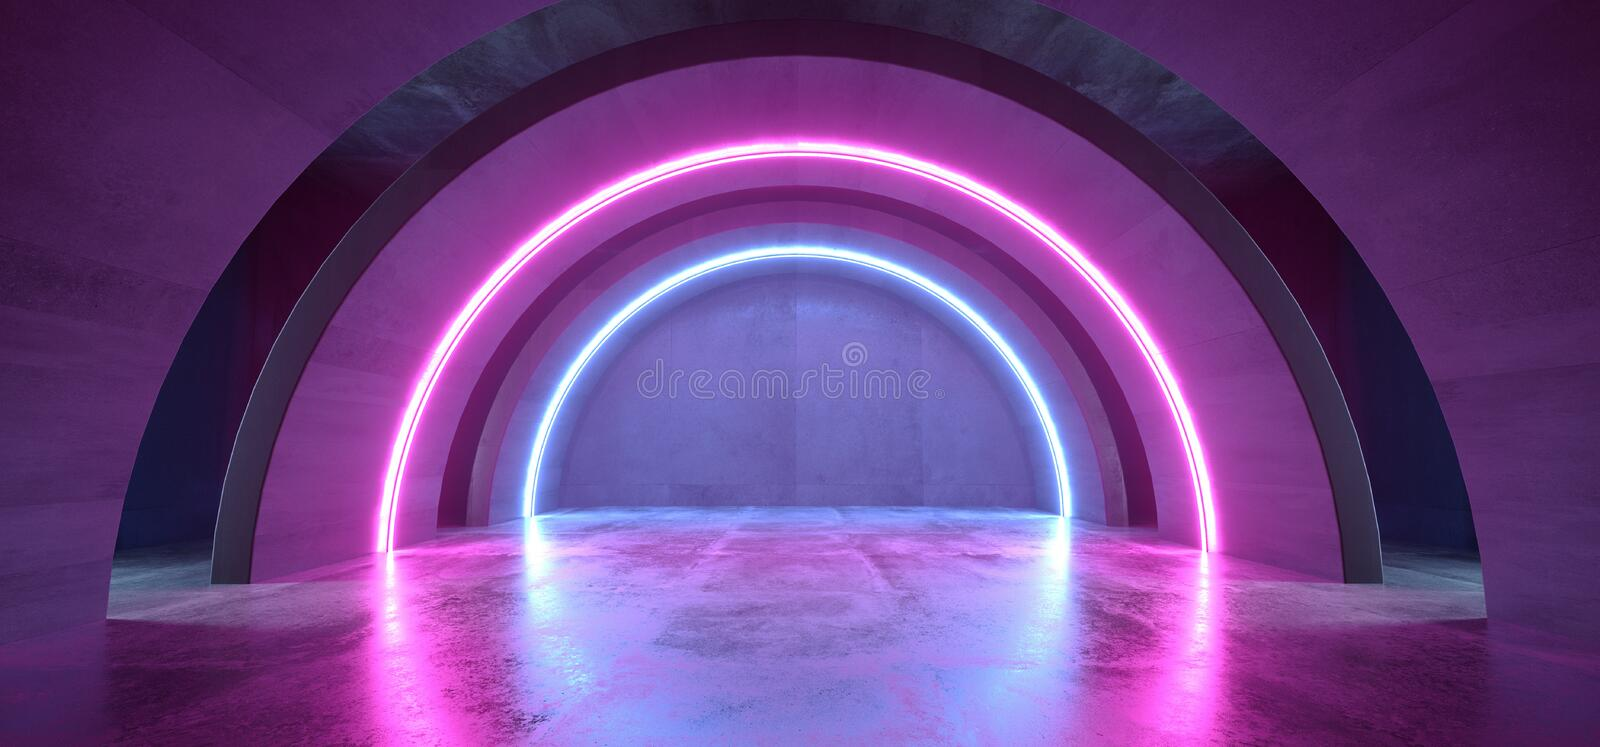 Neon Lights Blue Purple Glowing Circle Arch Sci Fi Futuristic Virtual Grunge Concrete Reflective Dark Empty Corridor Tunnel. Spaceship Stage Garage Hallway 3D royalty free illustration